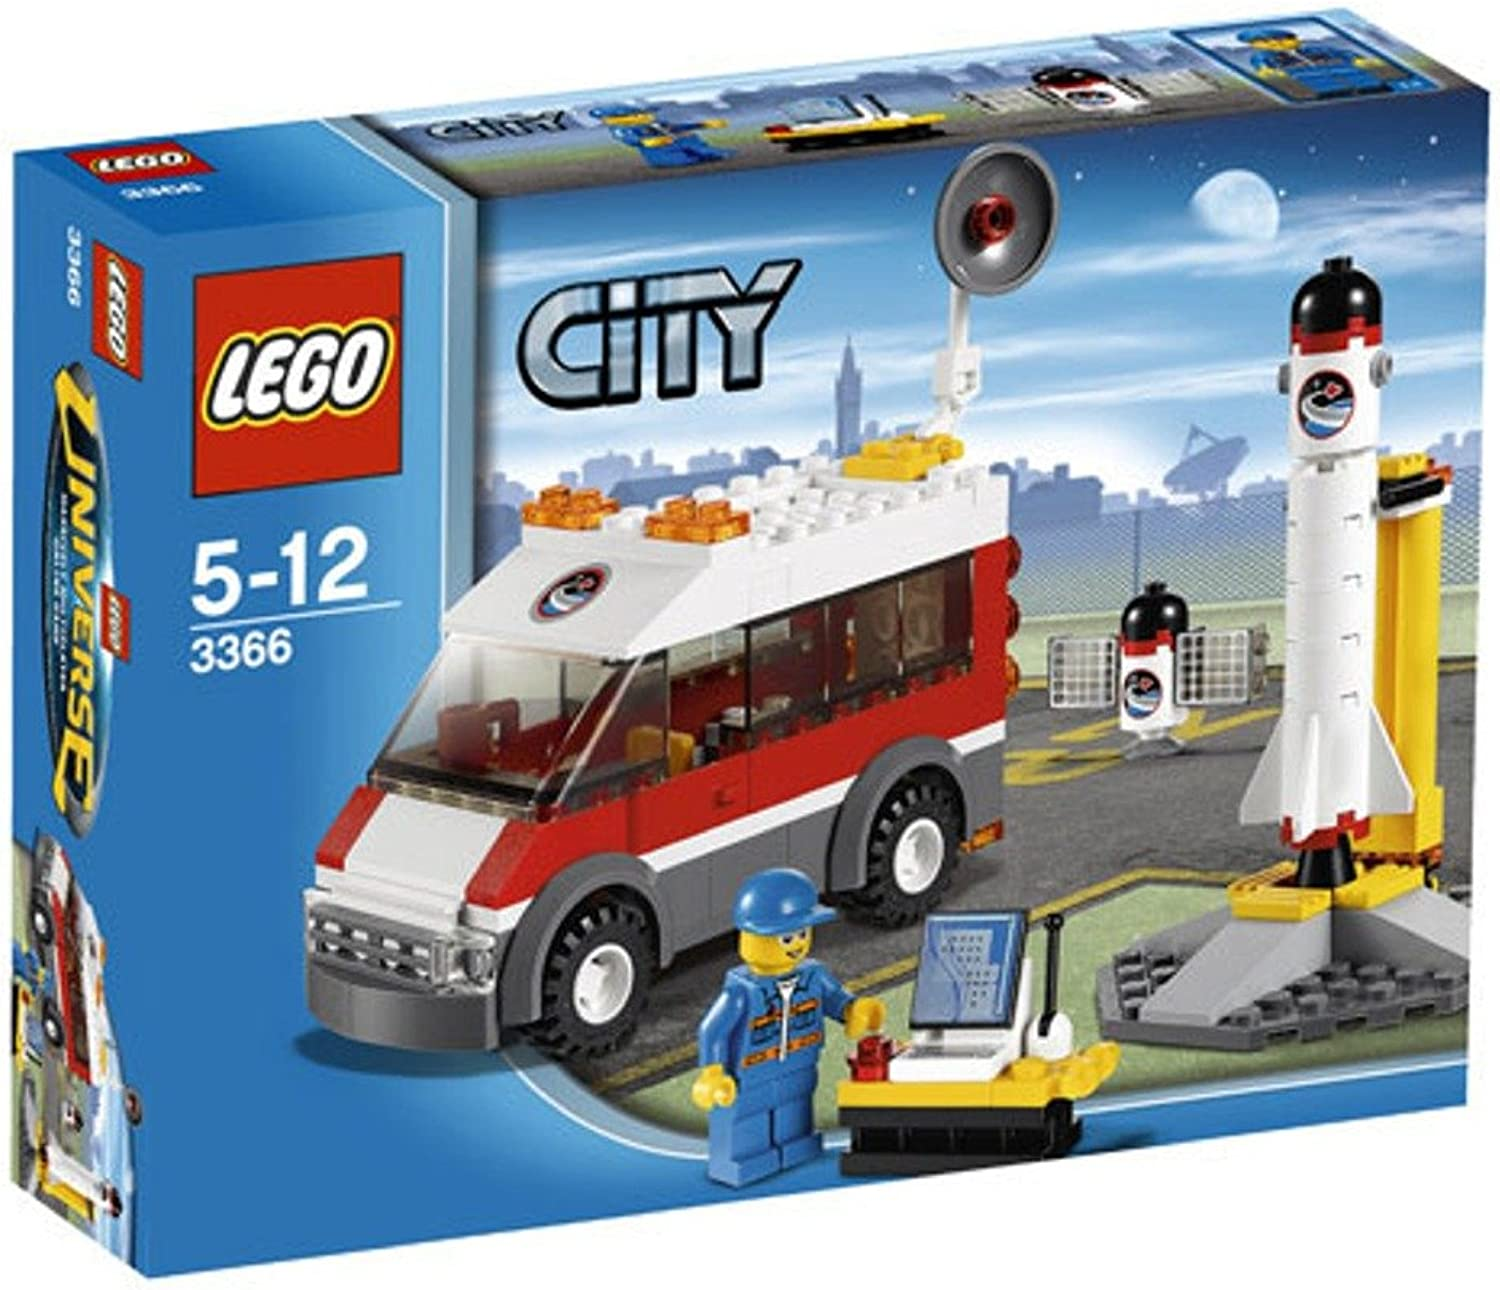 buscando agente de ventas LEGO CITY SATELLITE LAUNCH PAD - 3366 3366 3366  alta calidad general